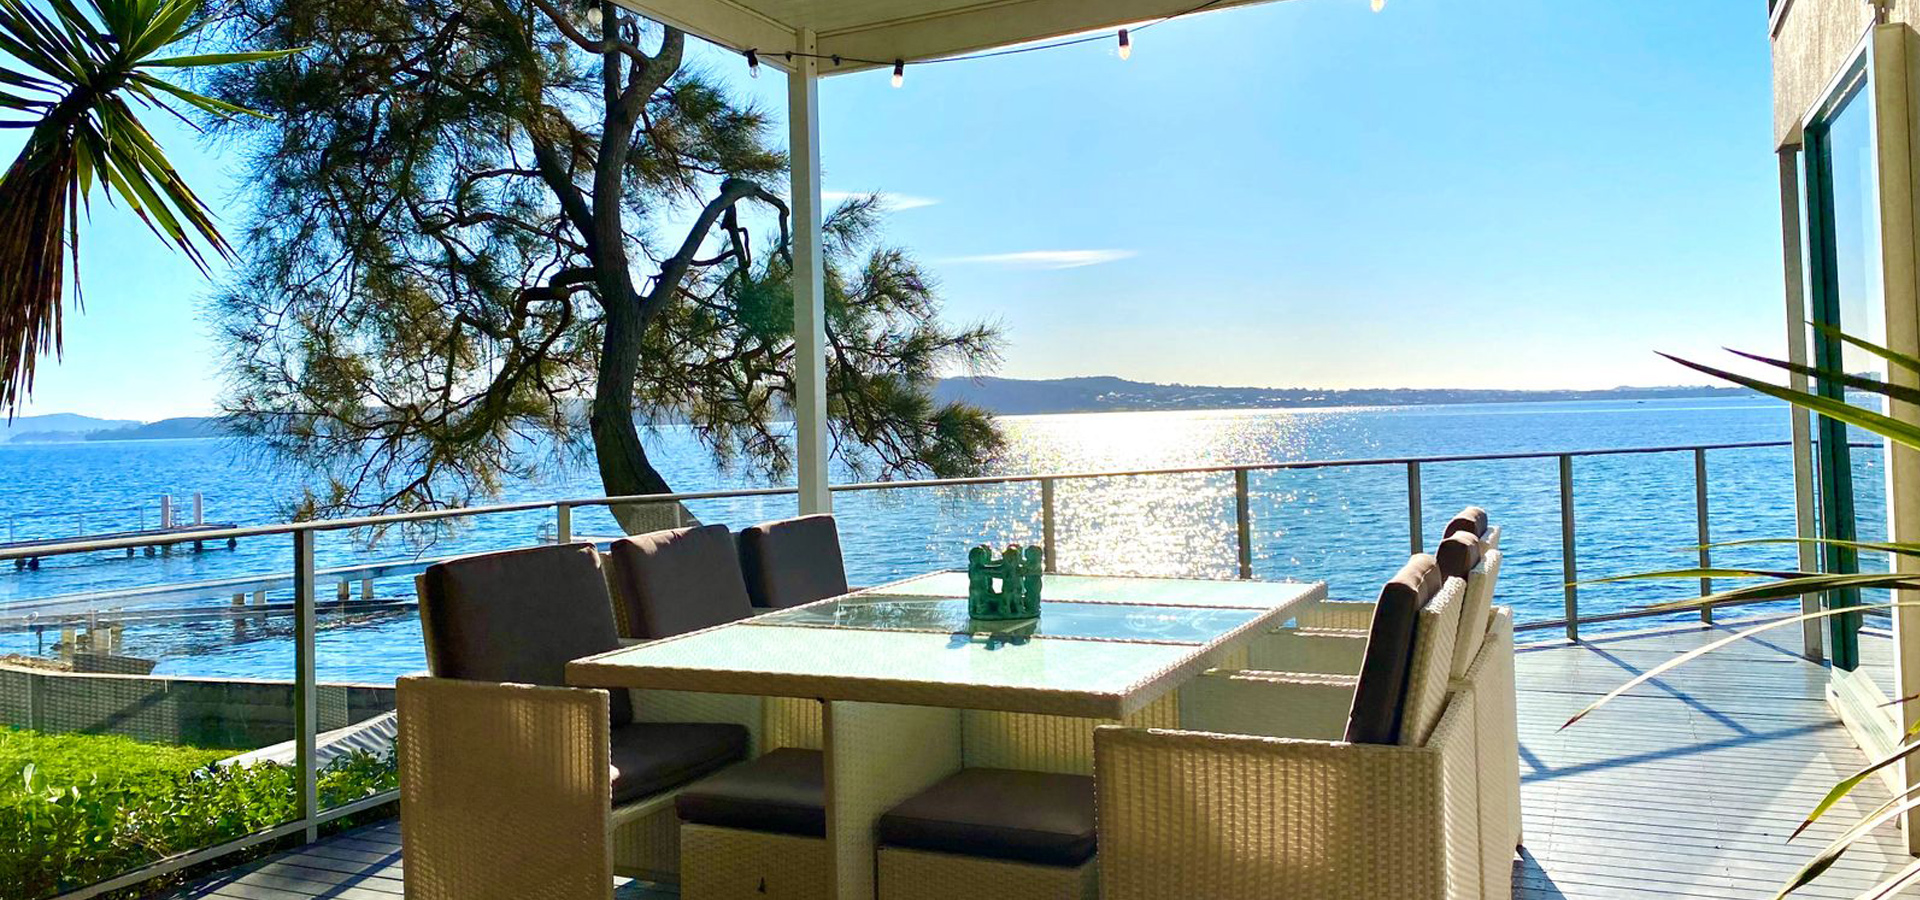 Are More Home Buyers Looking For A Lake Macquarie Sea Change In 2020?